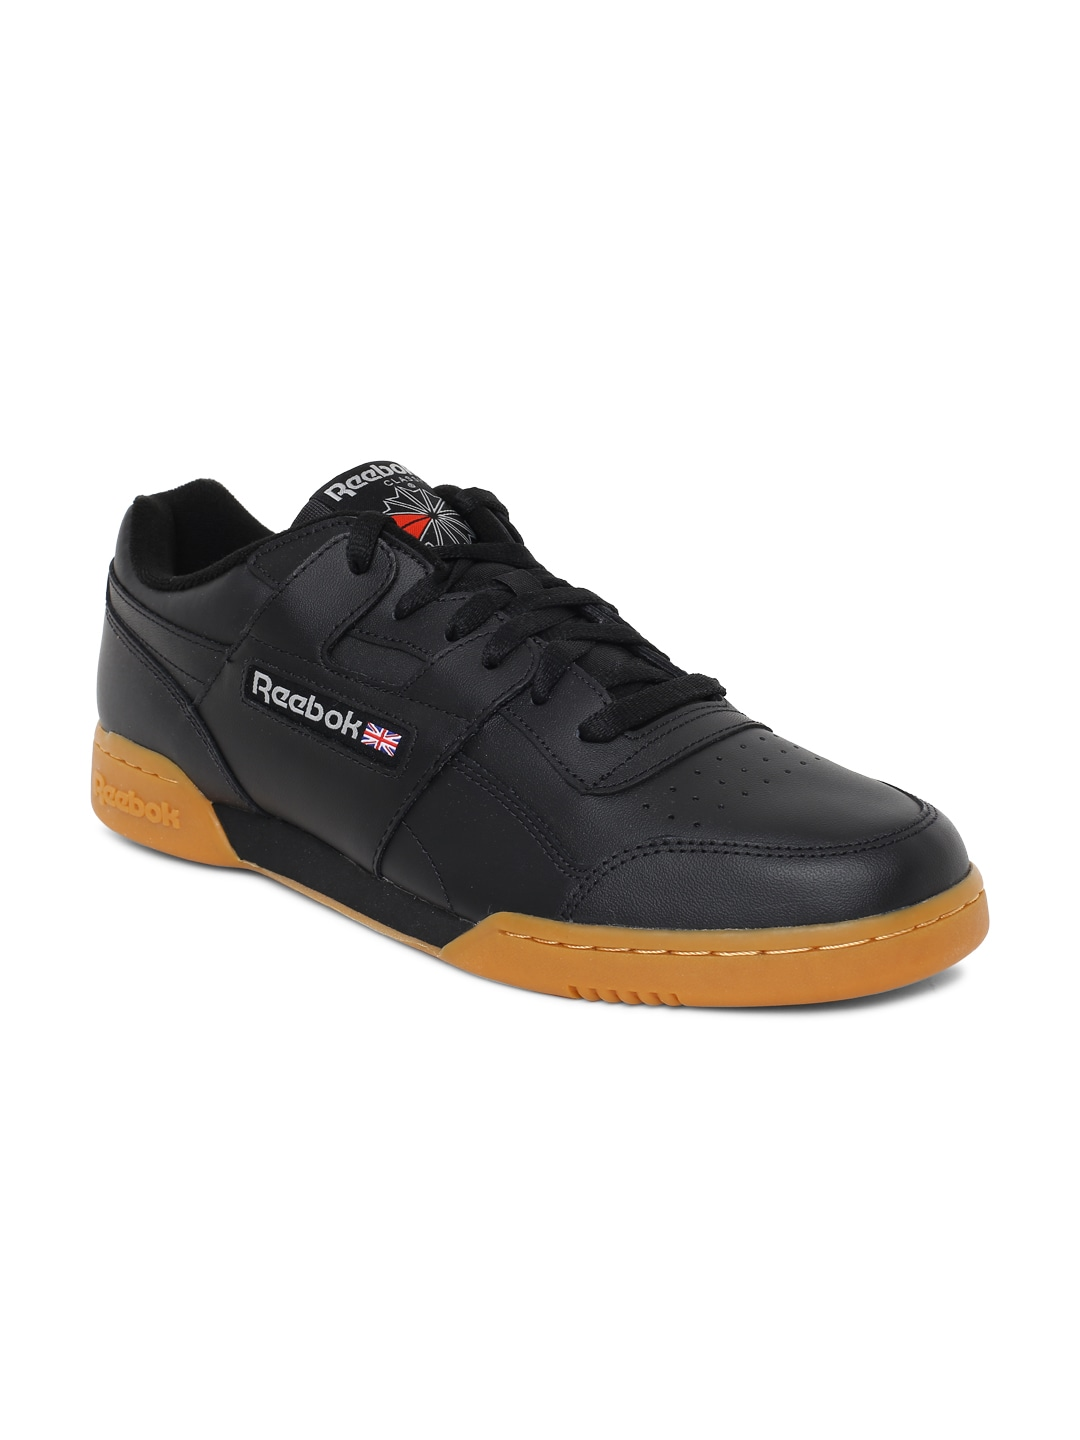 280c080cbc4e6 Reebok Leather Shoes - Buy Reebok Leather Shoes online in India